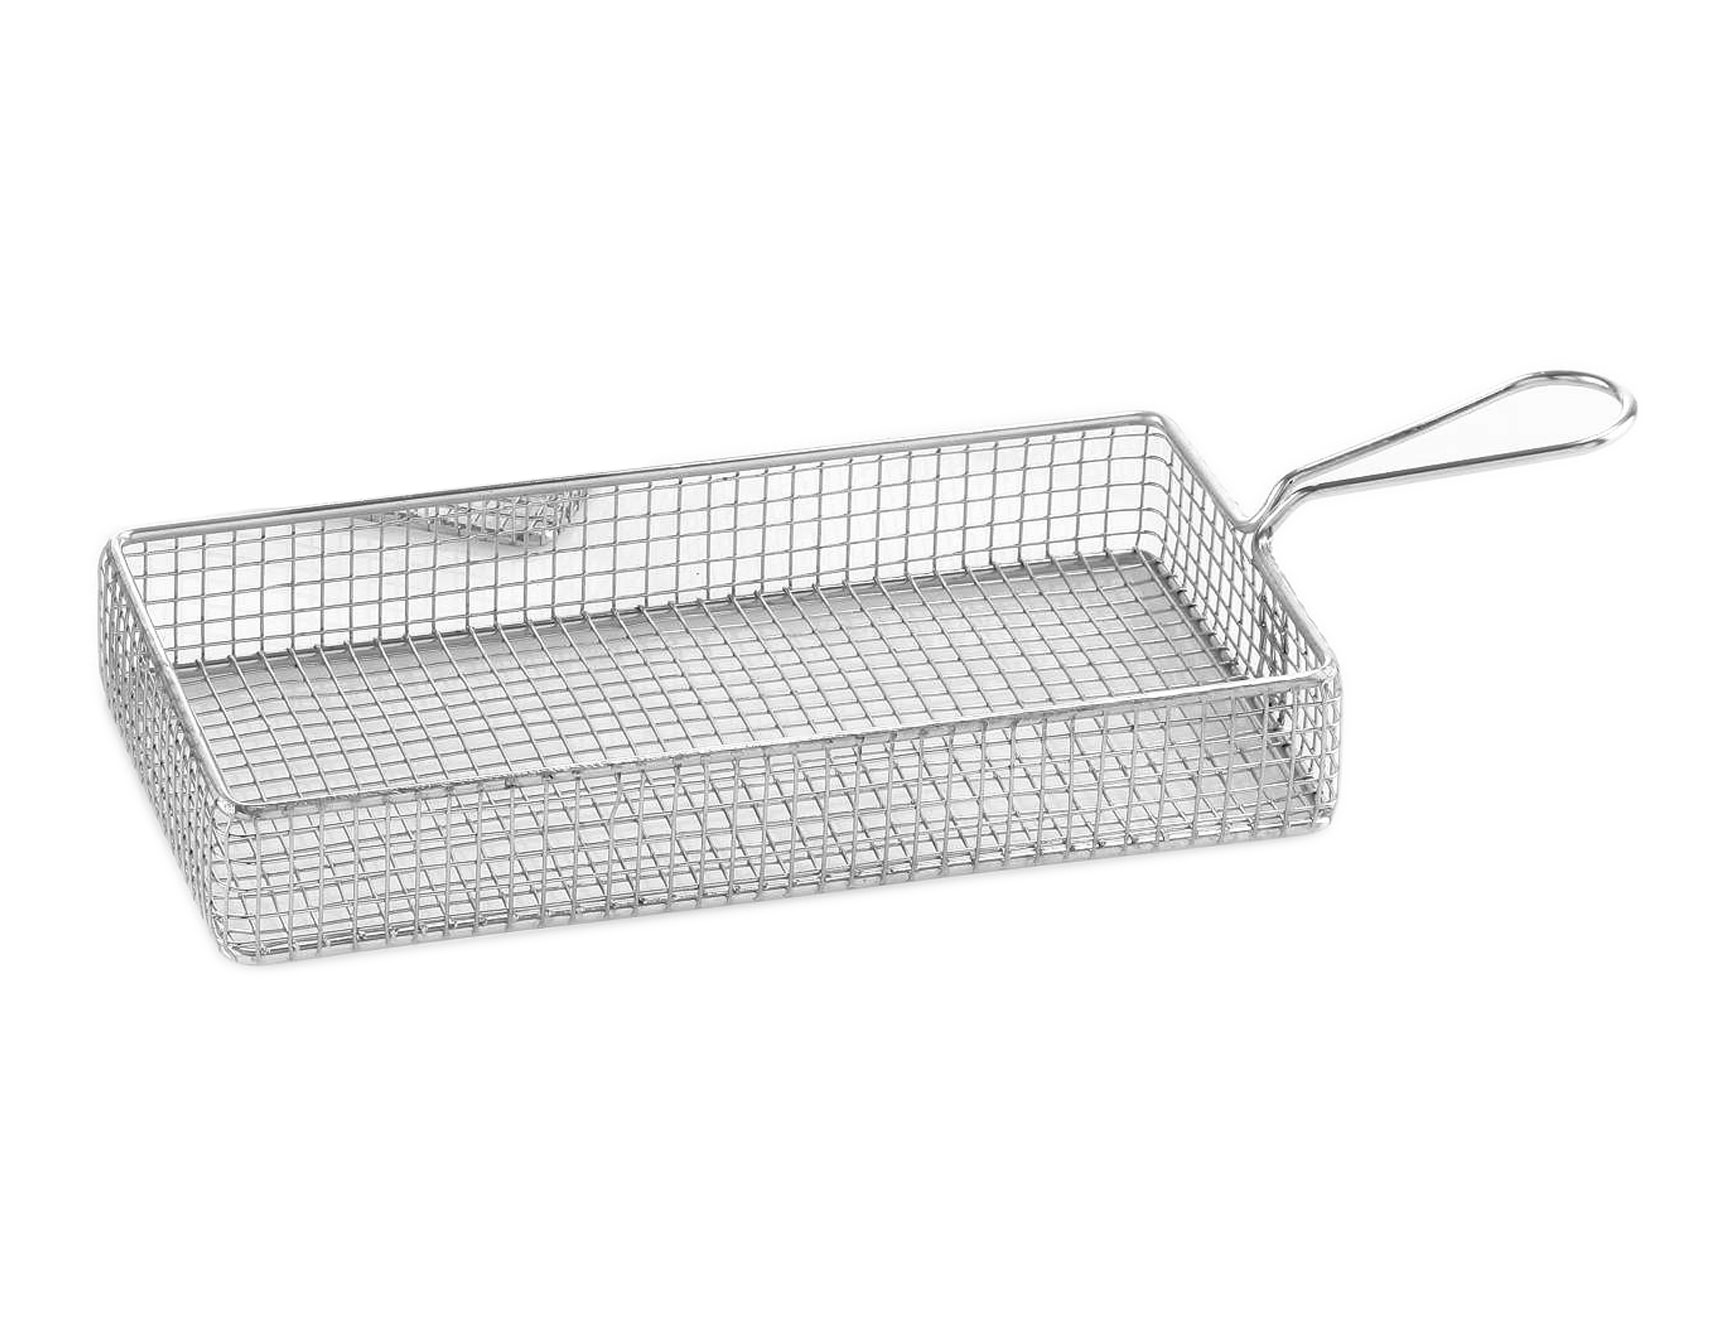 MINI BASKET RECTANGULAR - 215 X 105 X 35mm